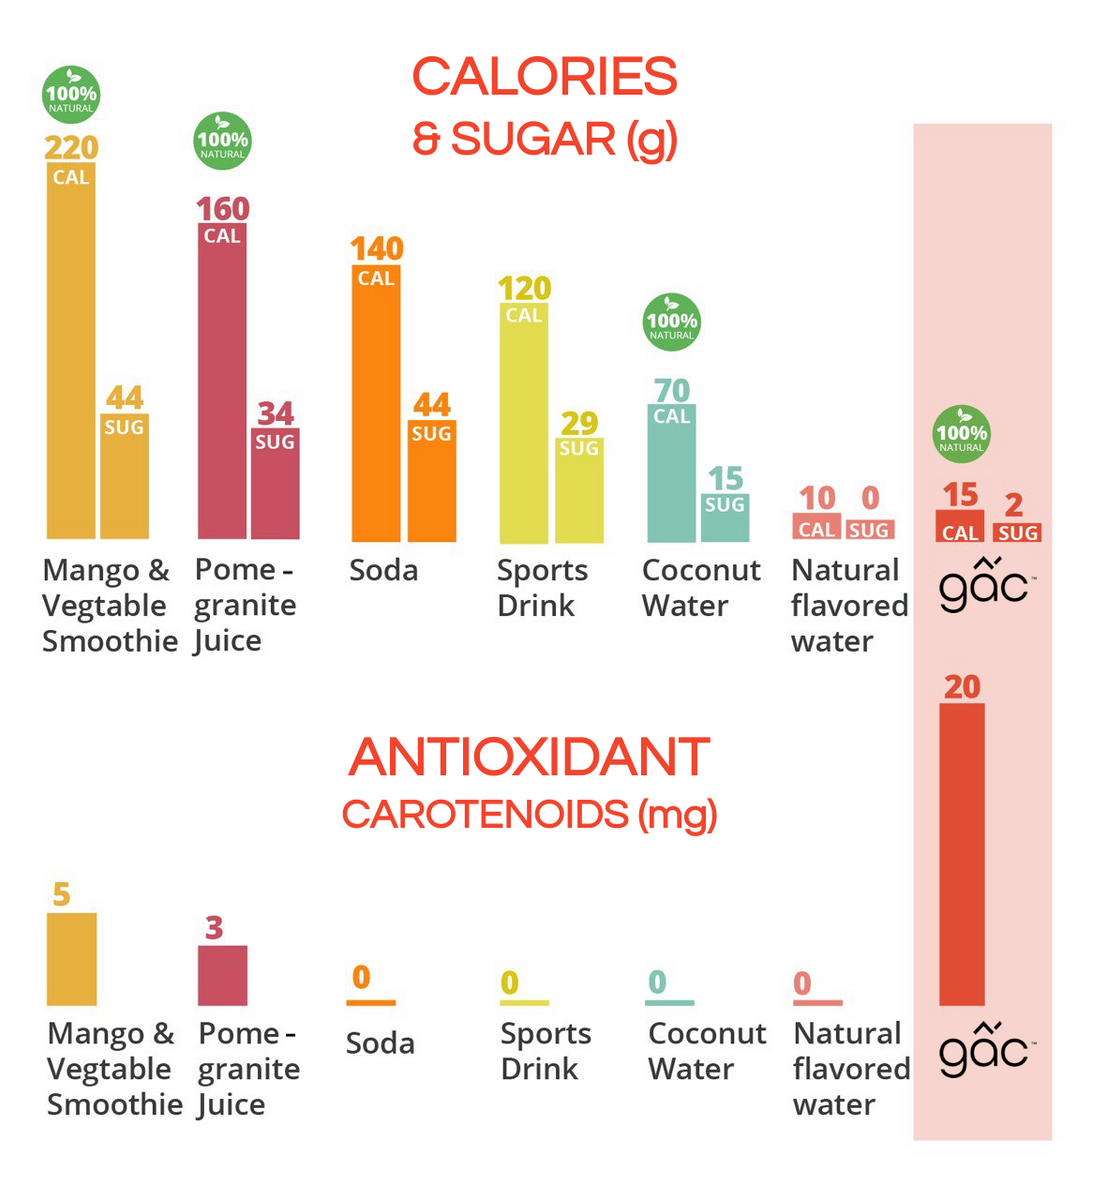 gac vs other beverages